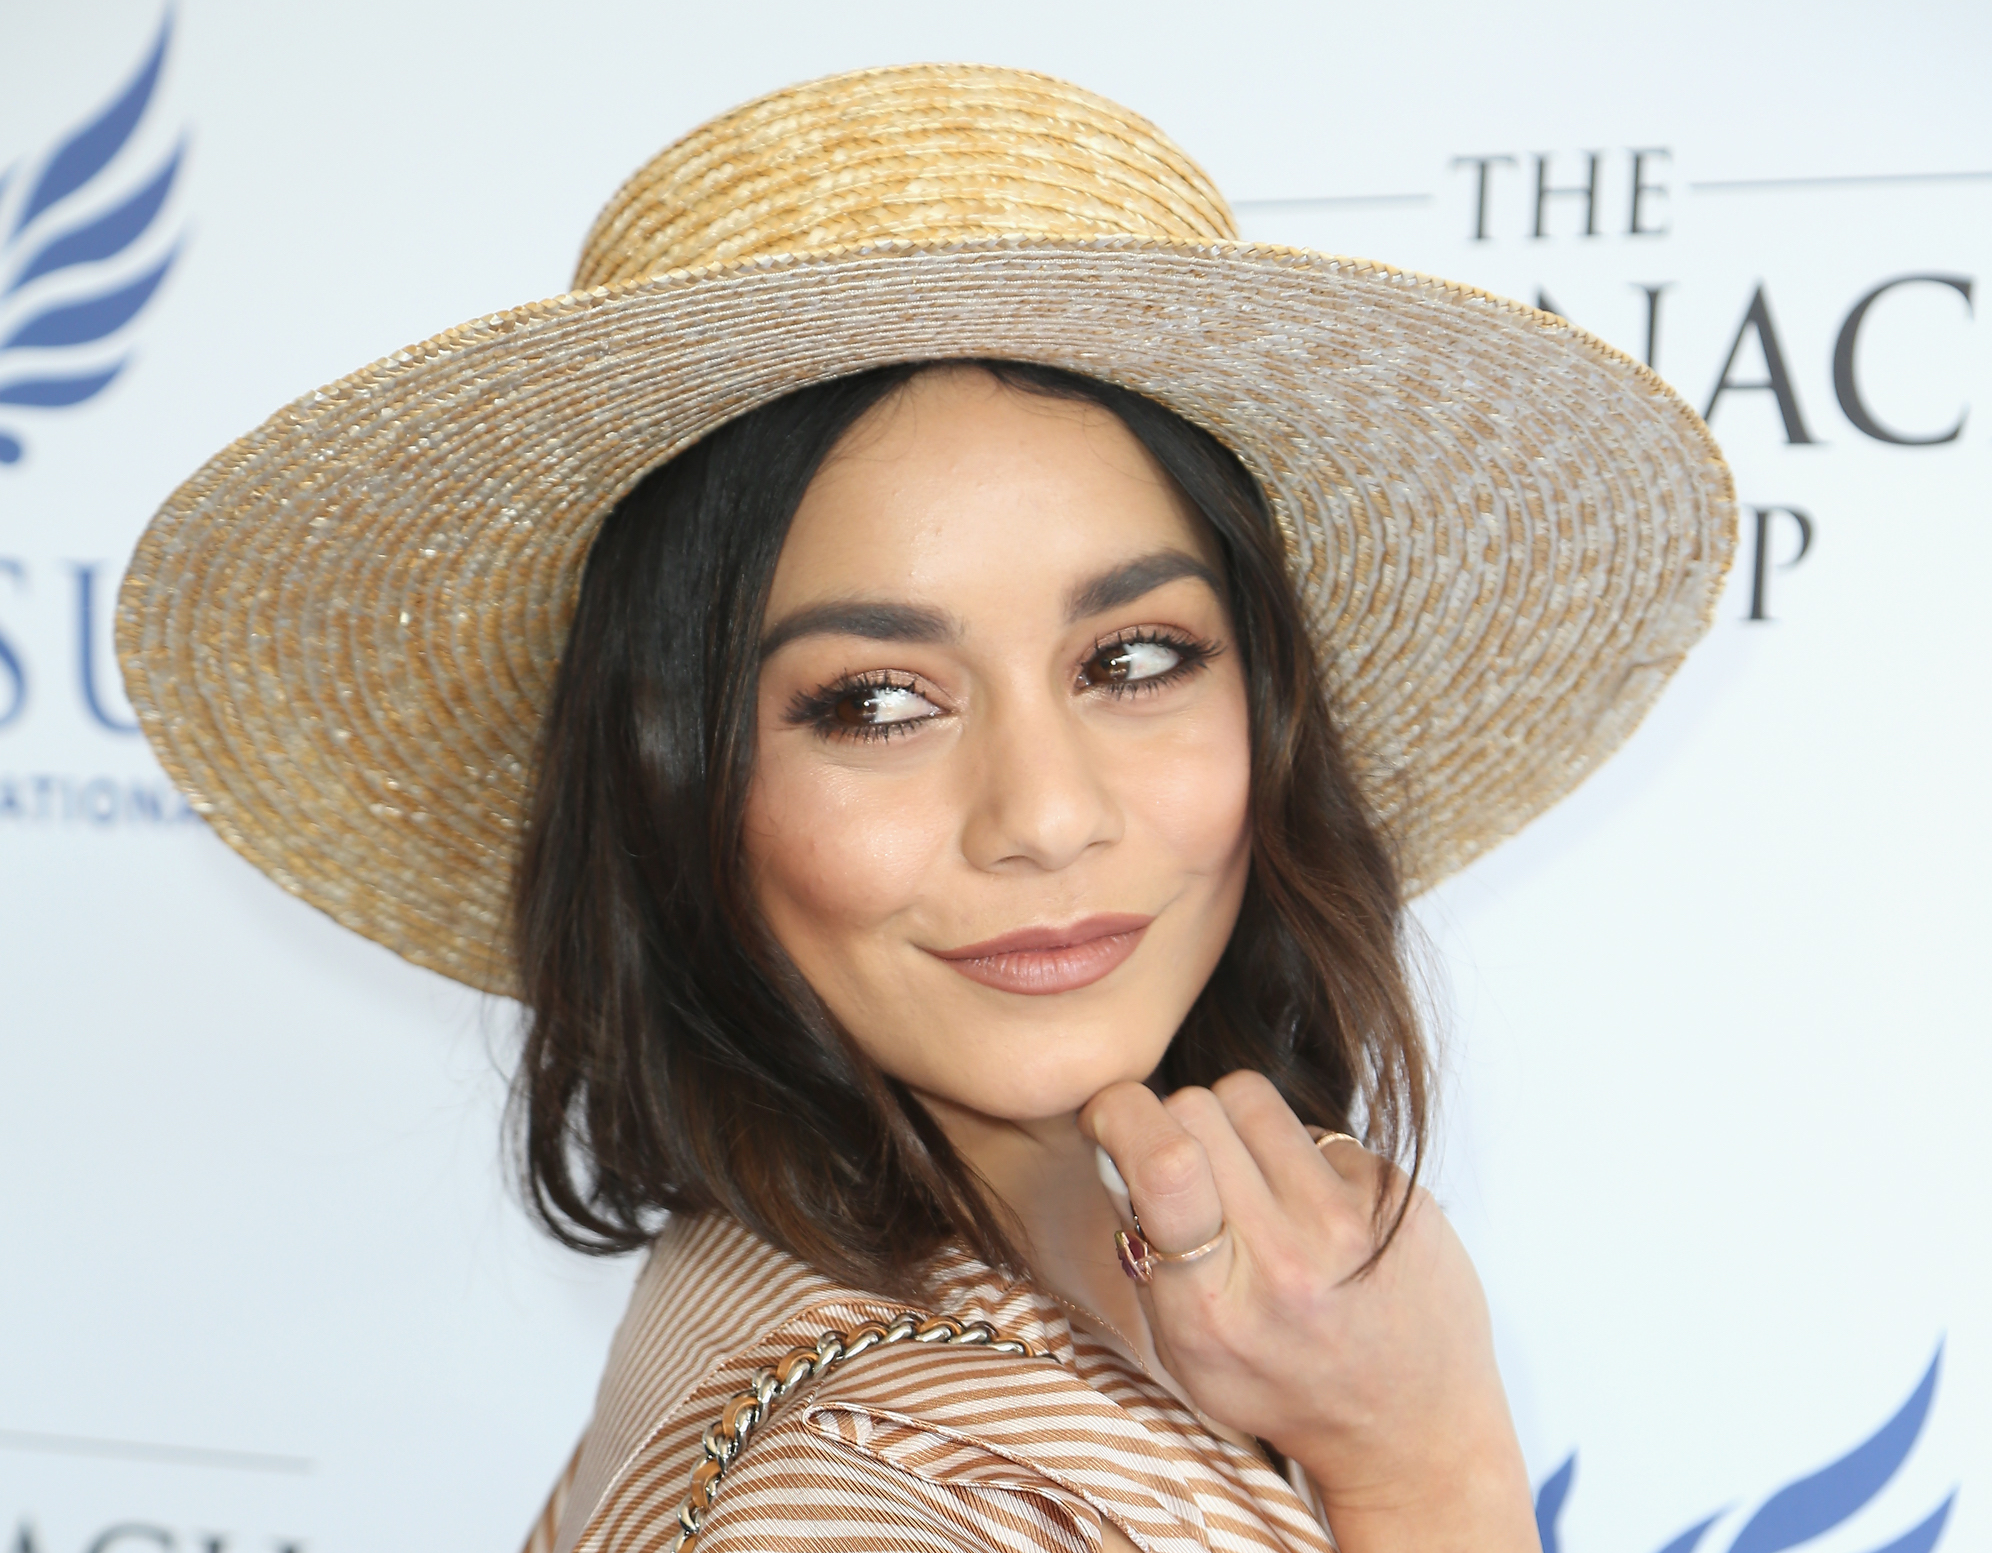 Vanessa Hudgens carries 20 of this beauty product with her at all times